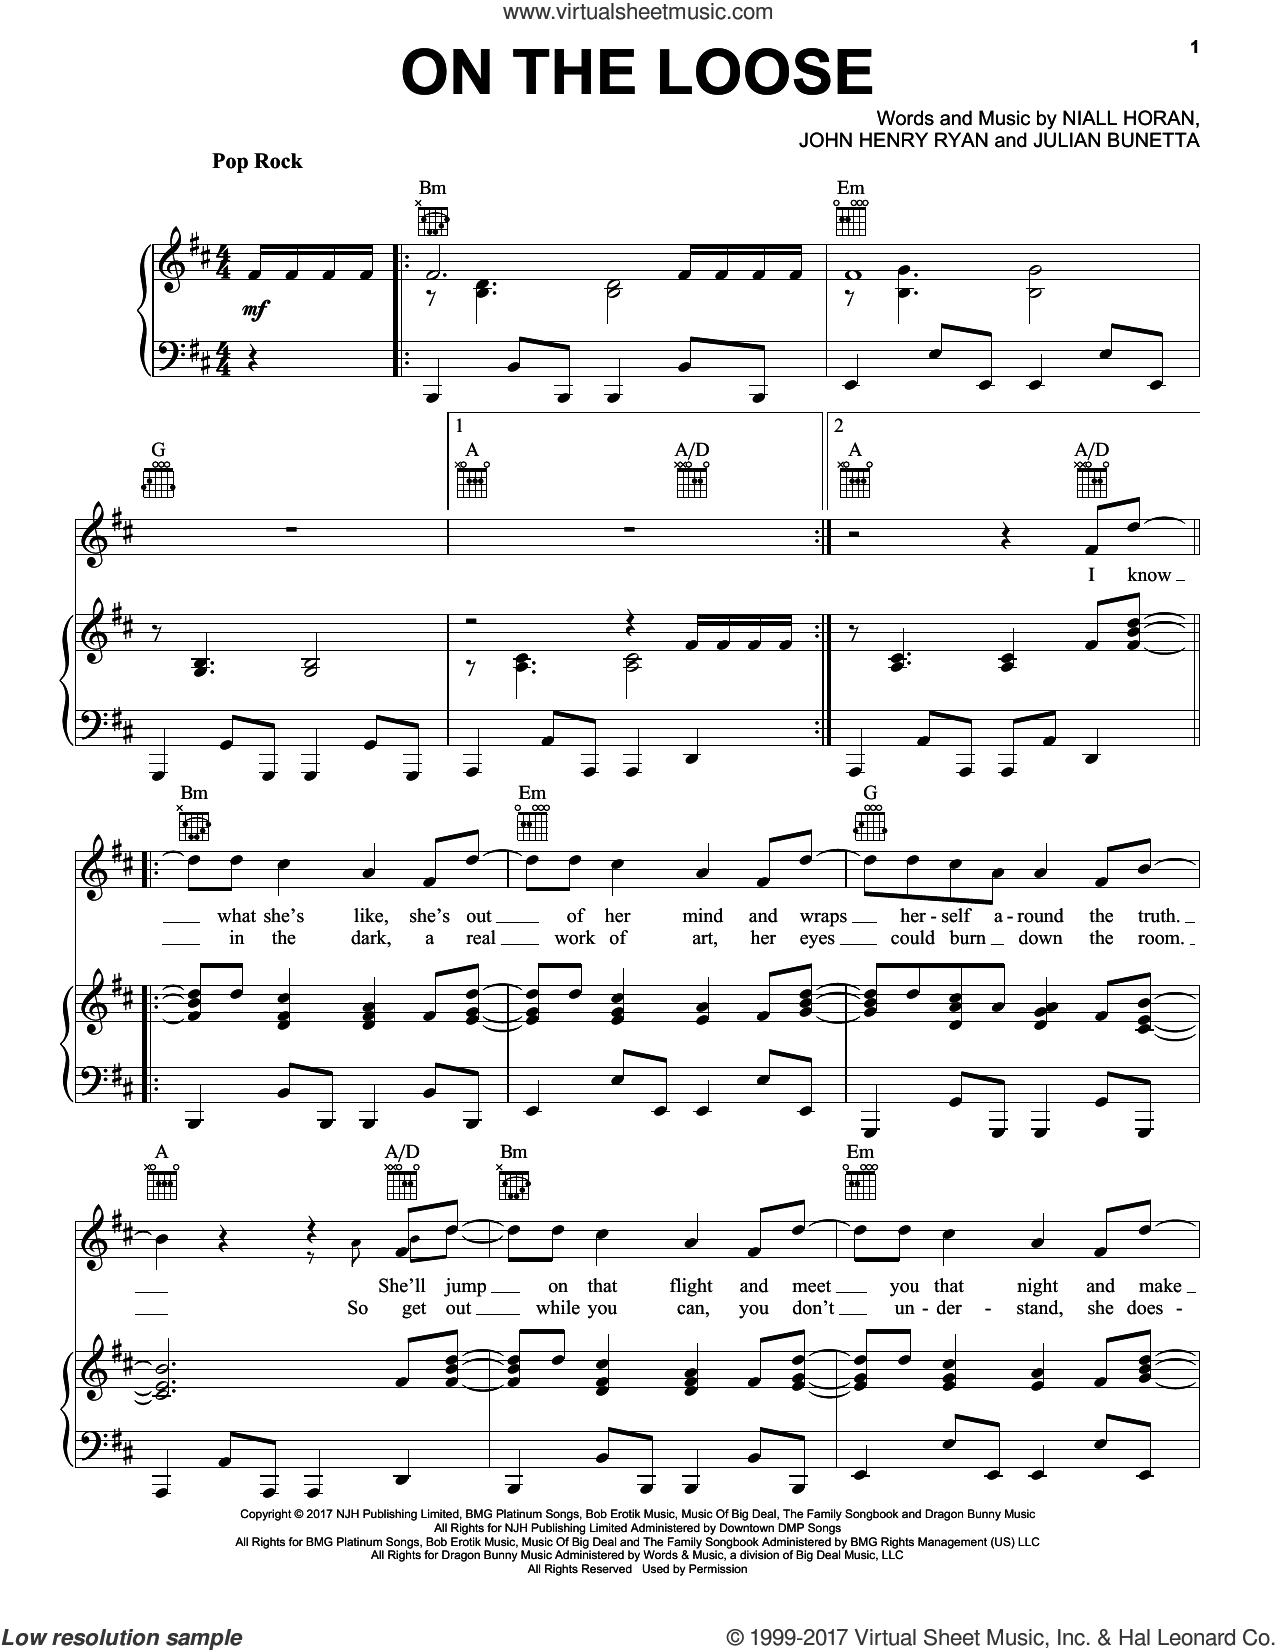 On The Loose sheet music for voice, piano or guitar by Niall Horan, John Henry Ryan and Julian Bunetta, intermediate skill level